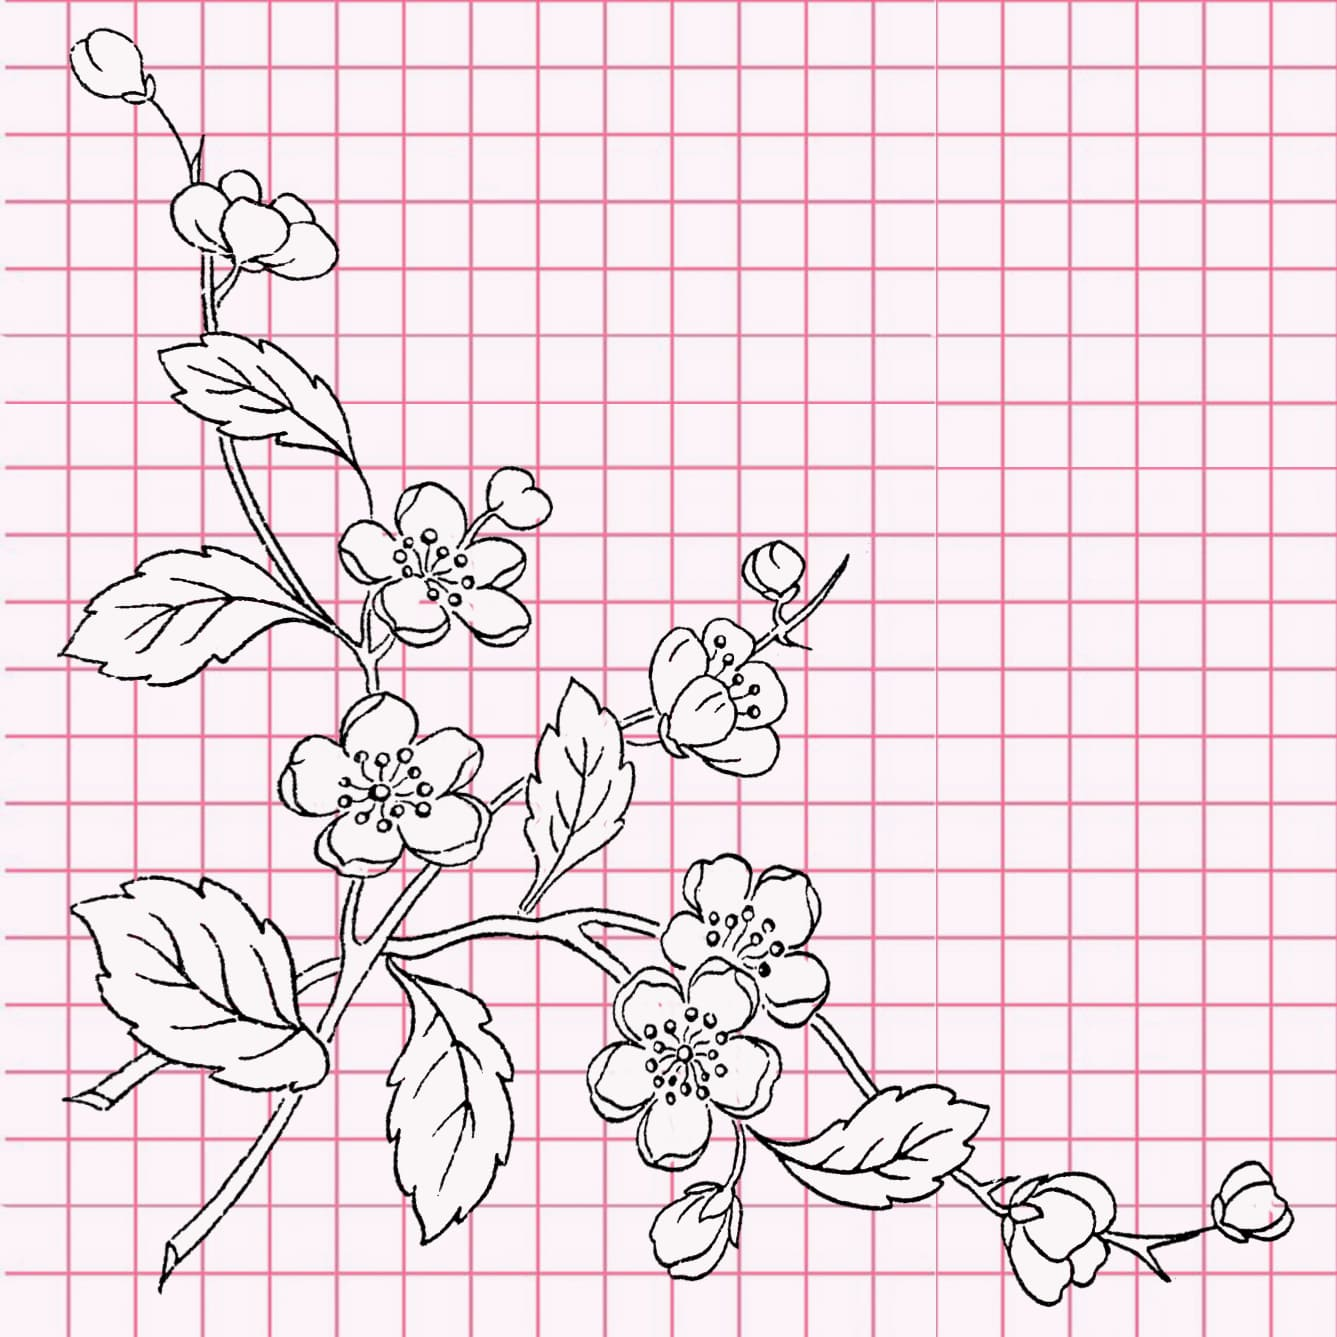 flowers-drawing-image-40